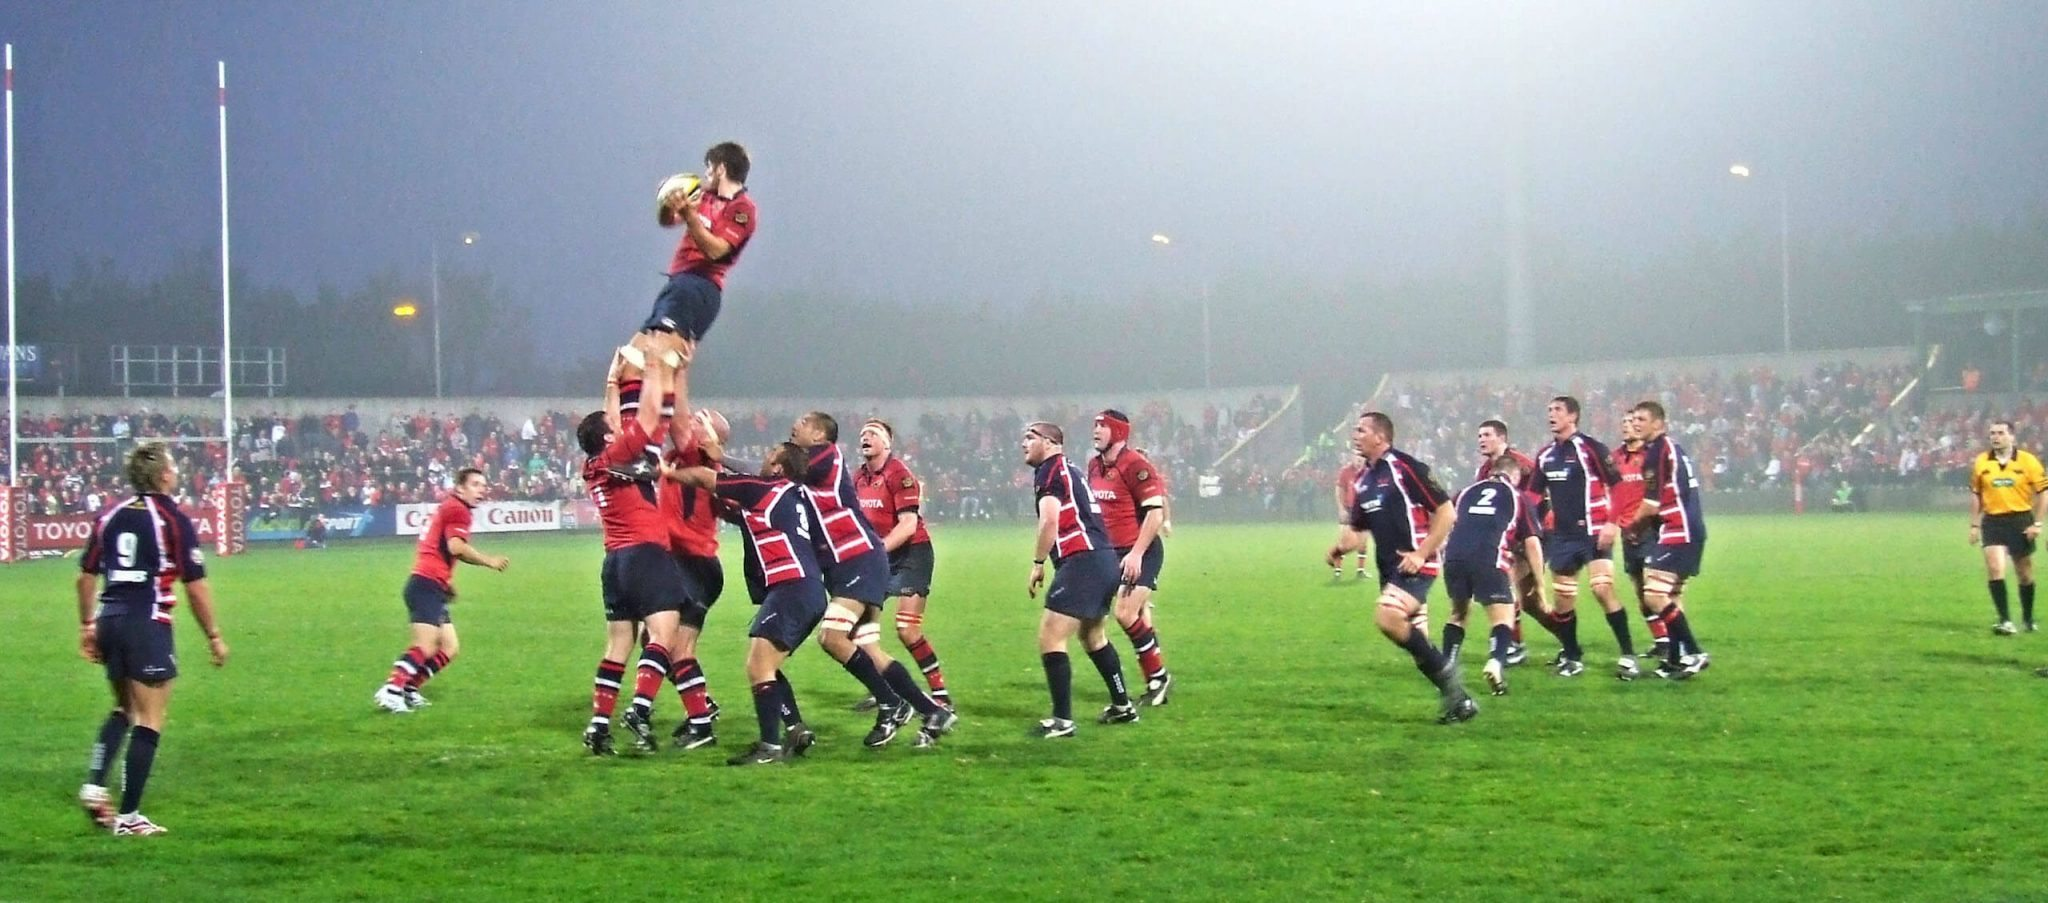 A player in a line out catches the ball during a game of rugby